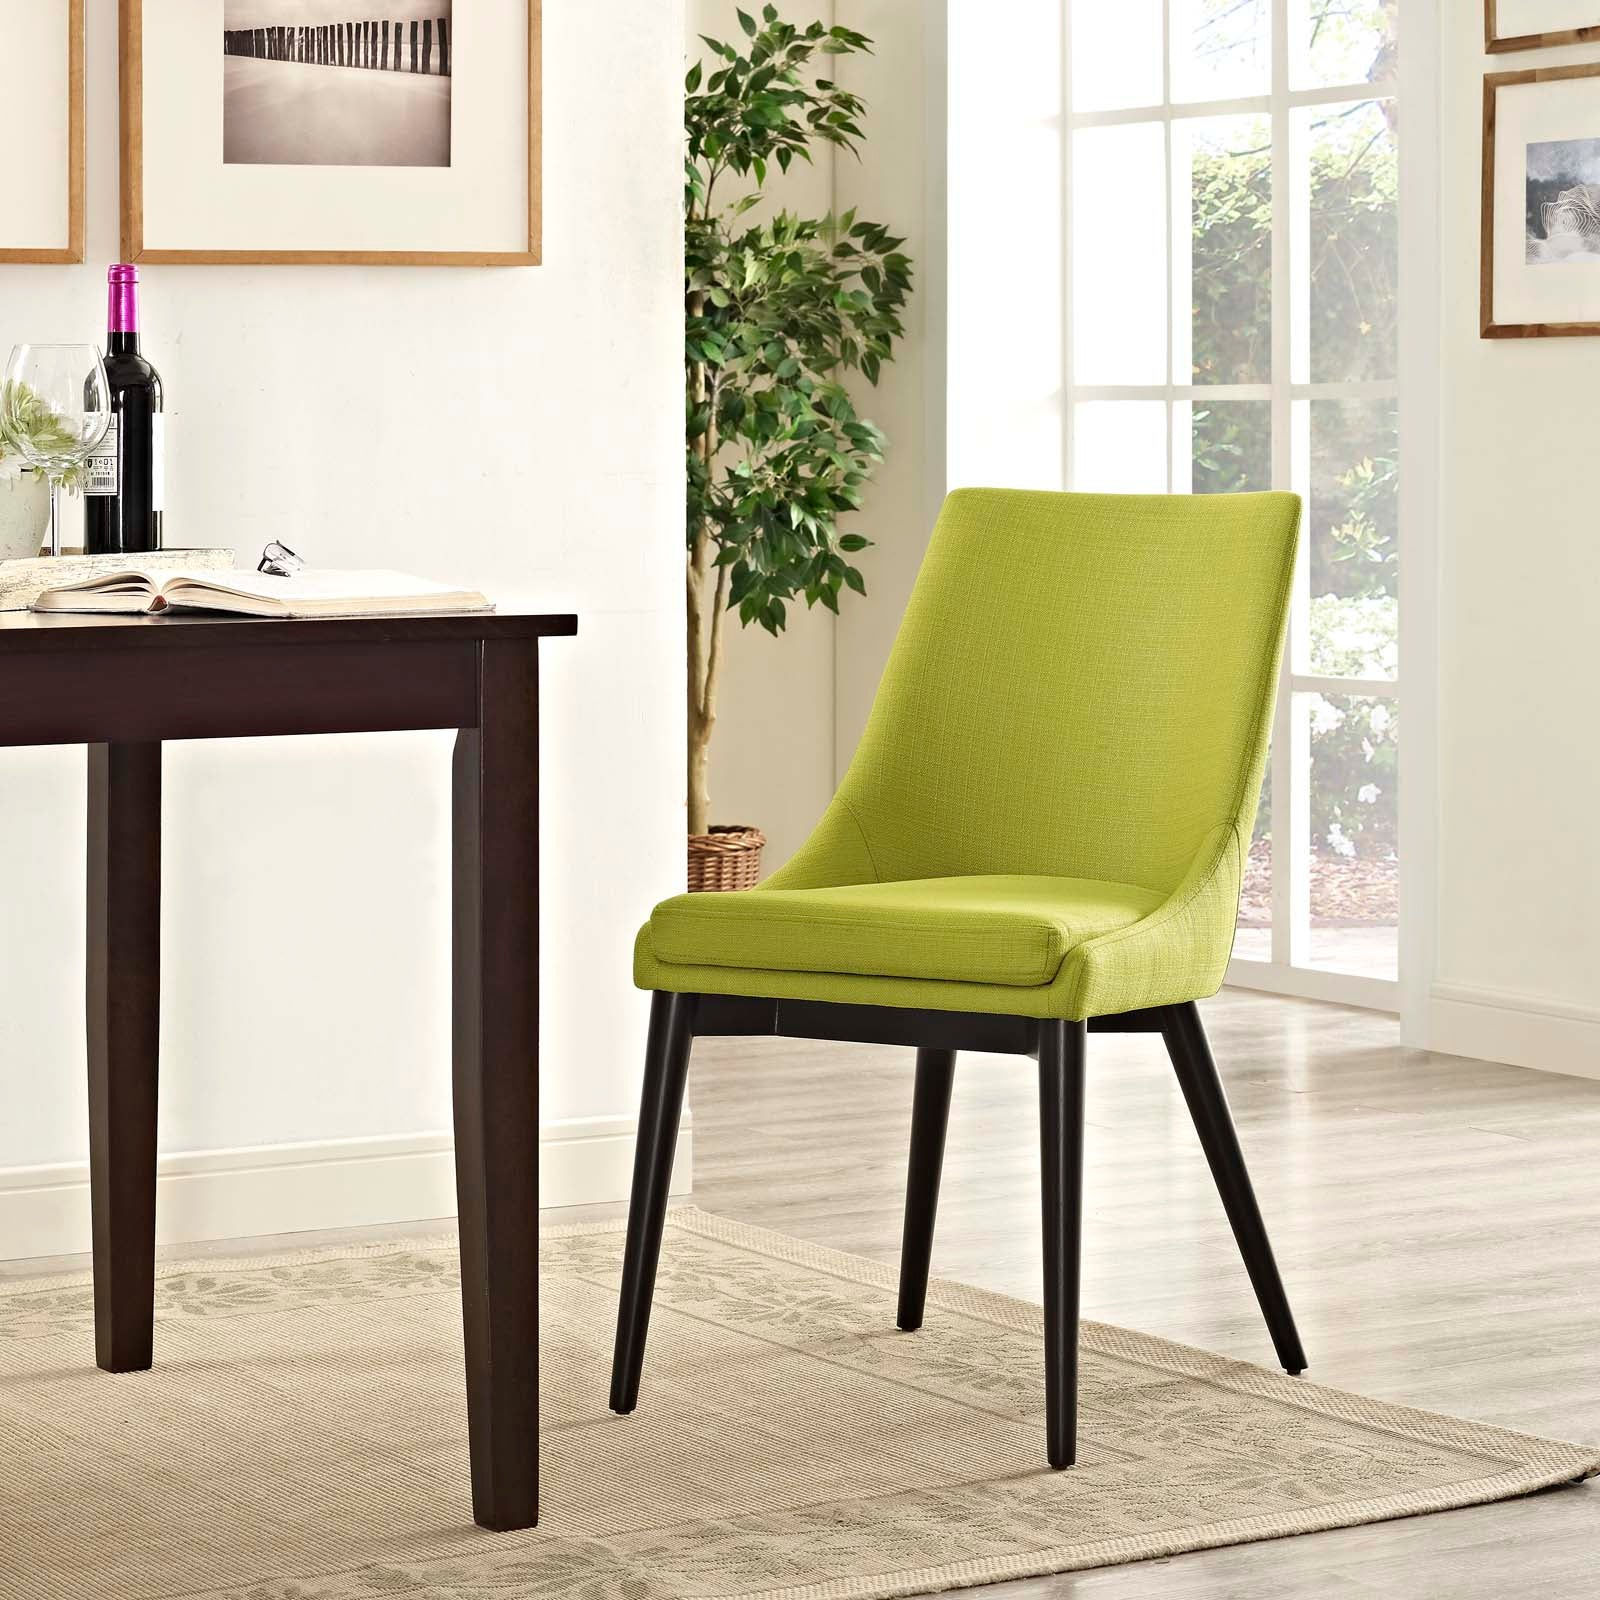 Modway Viscount Fabric Dining Chair Eei 2227 Brn Only